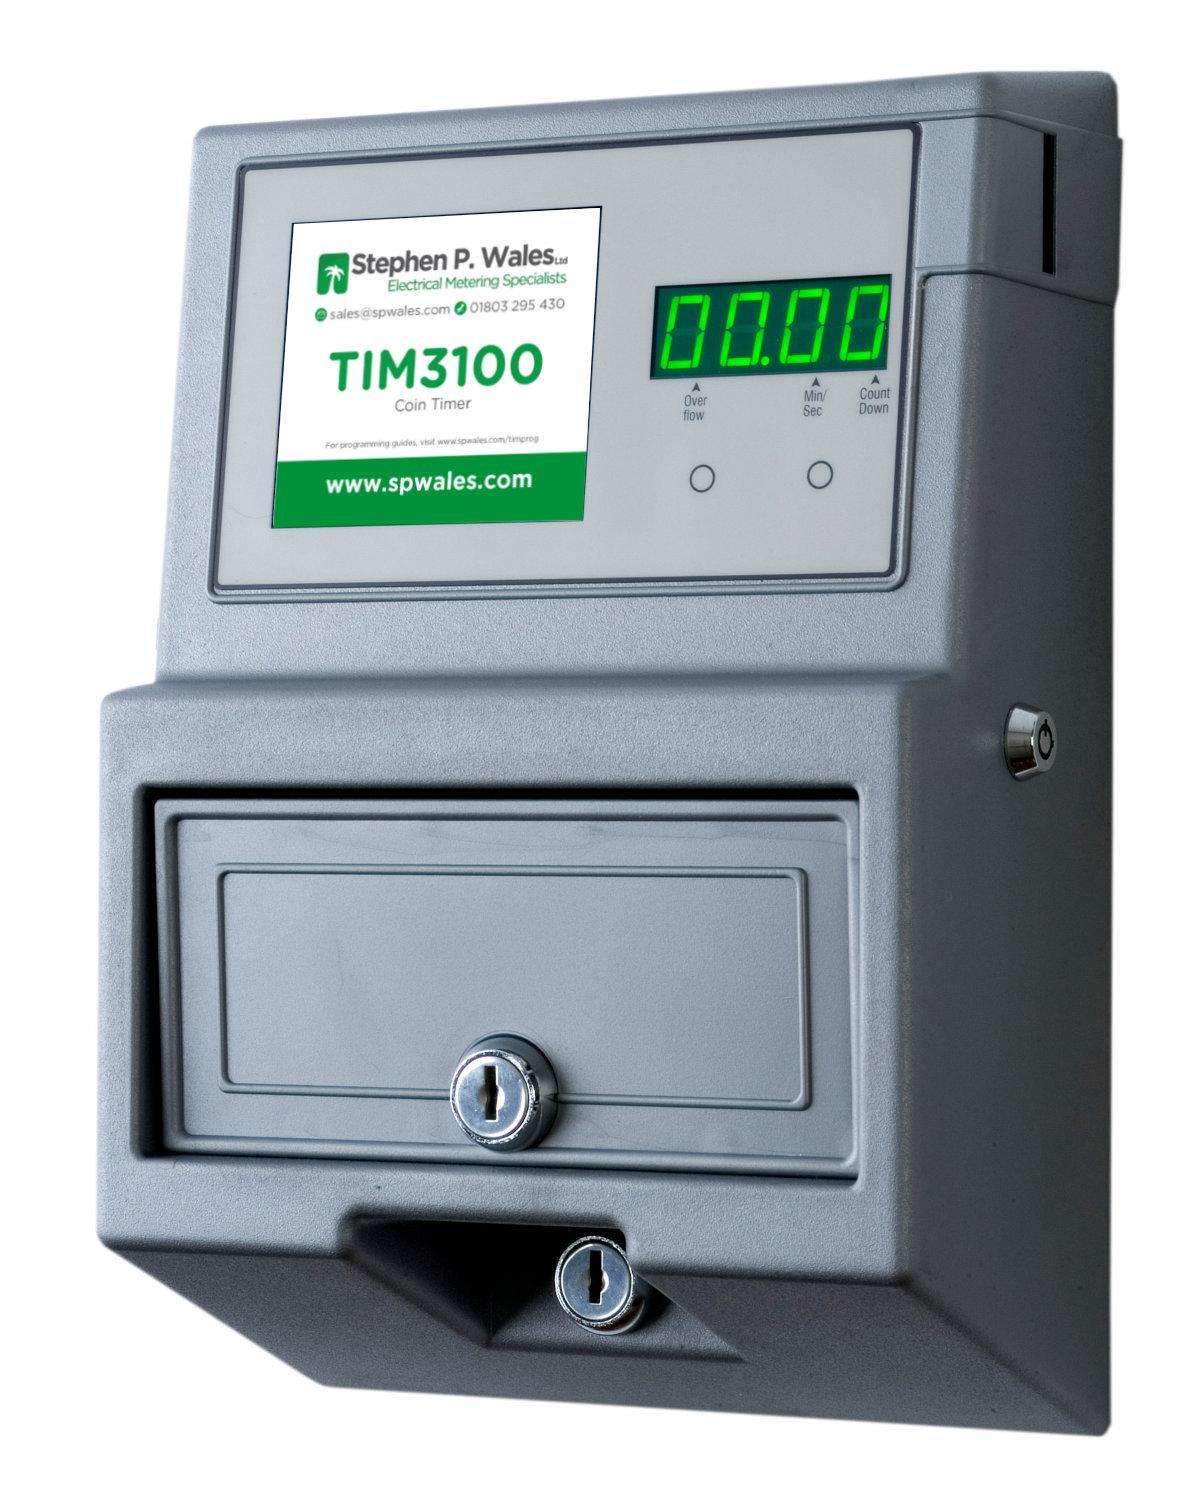 TIM3100 Coin / Token Meter